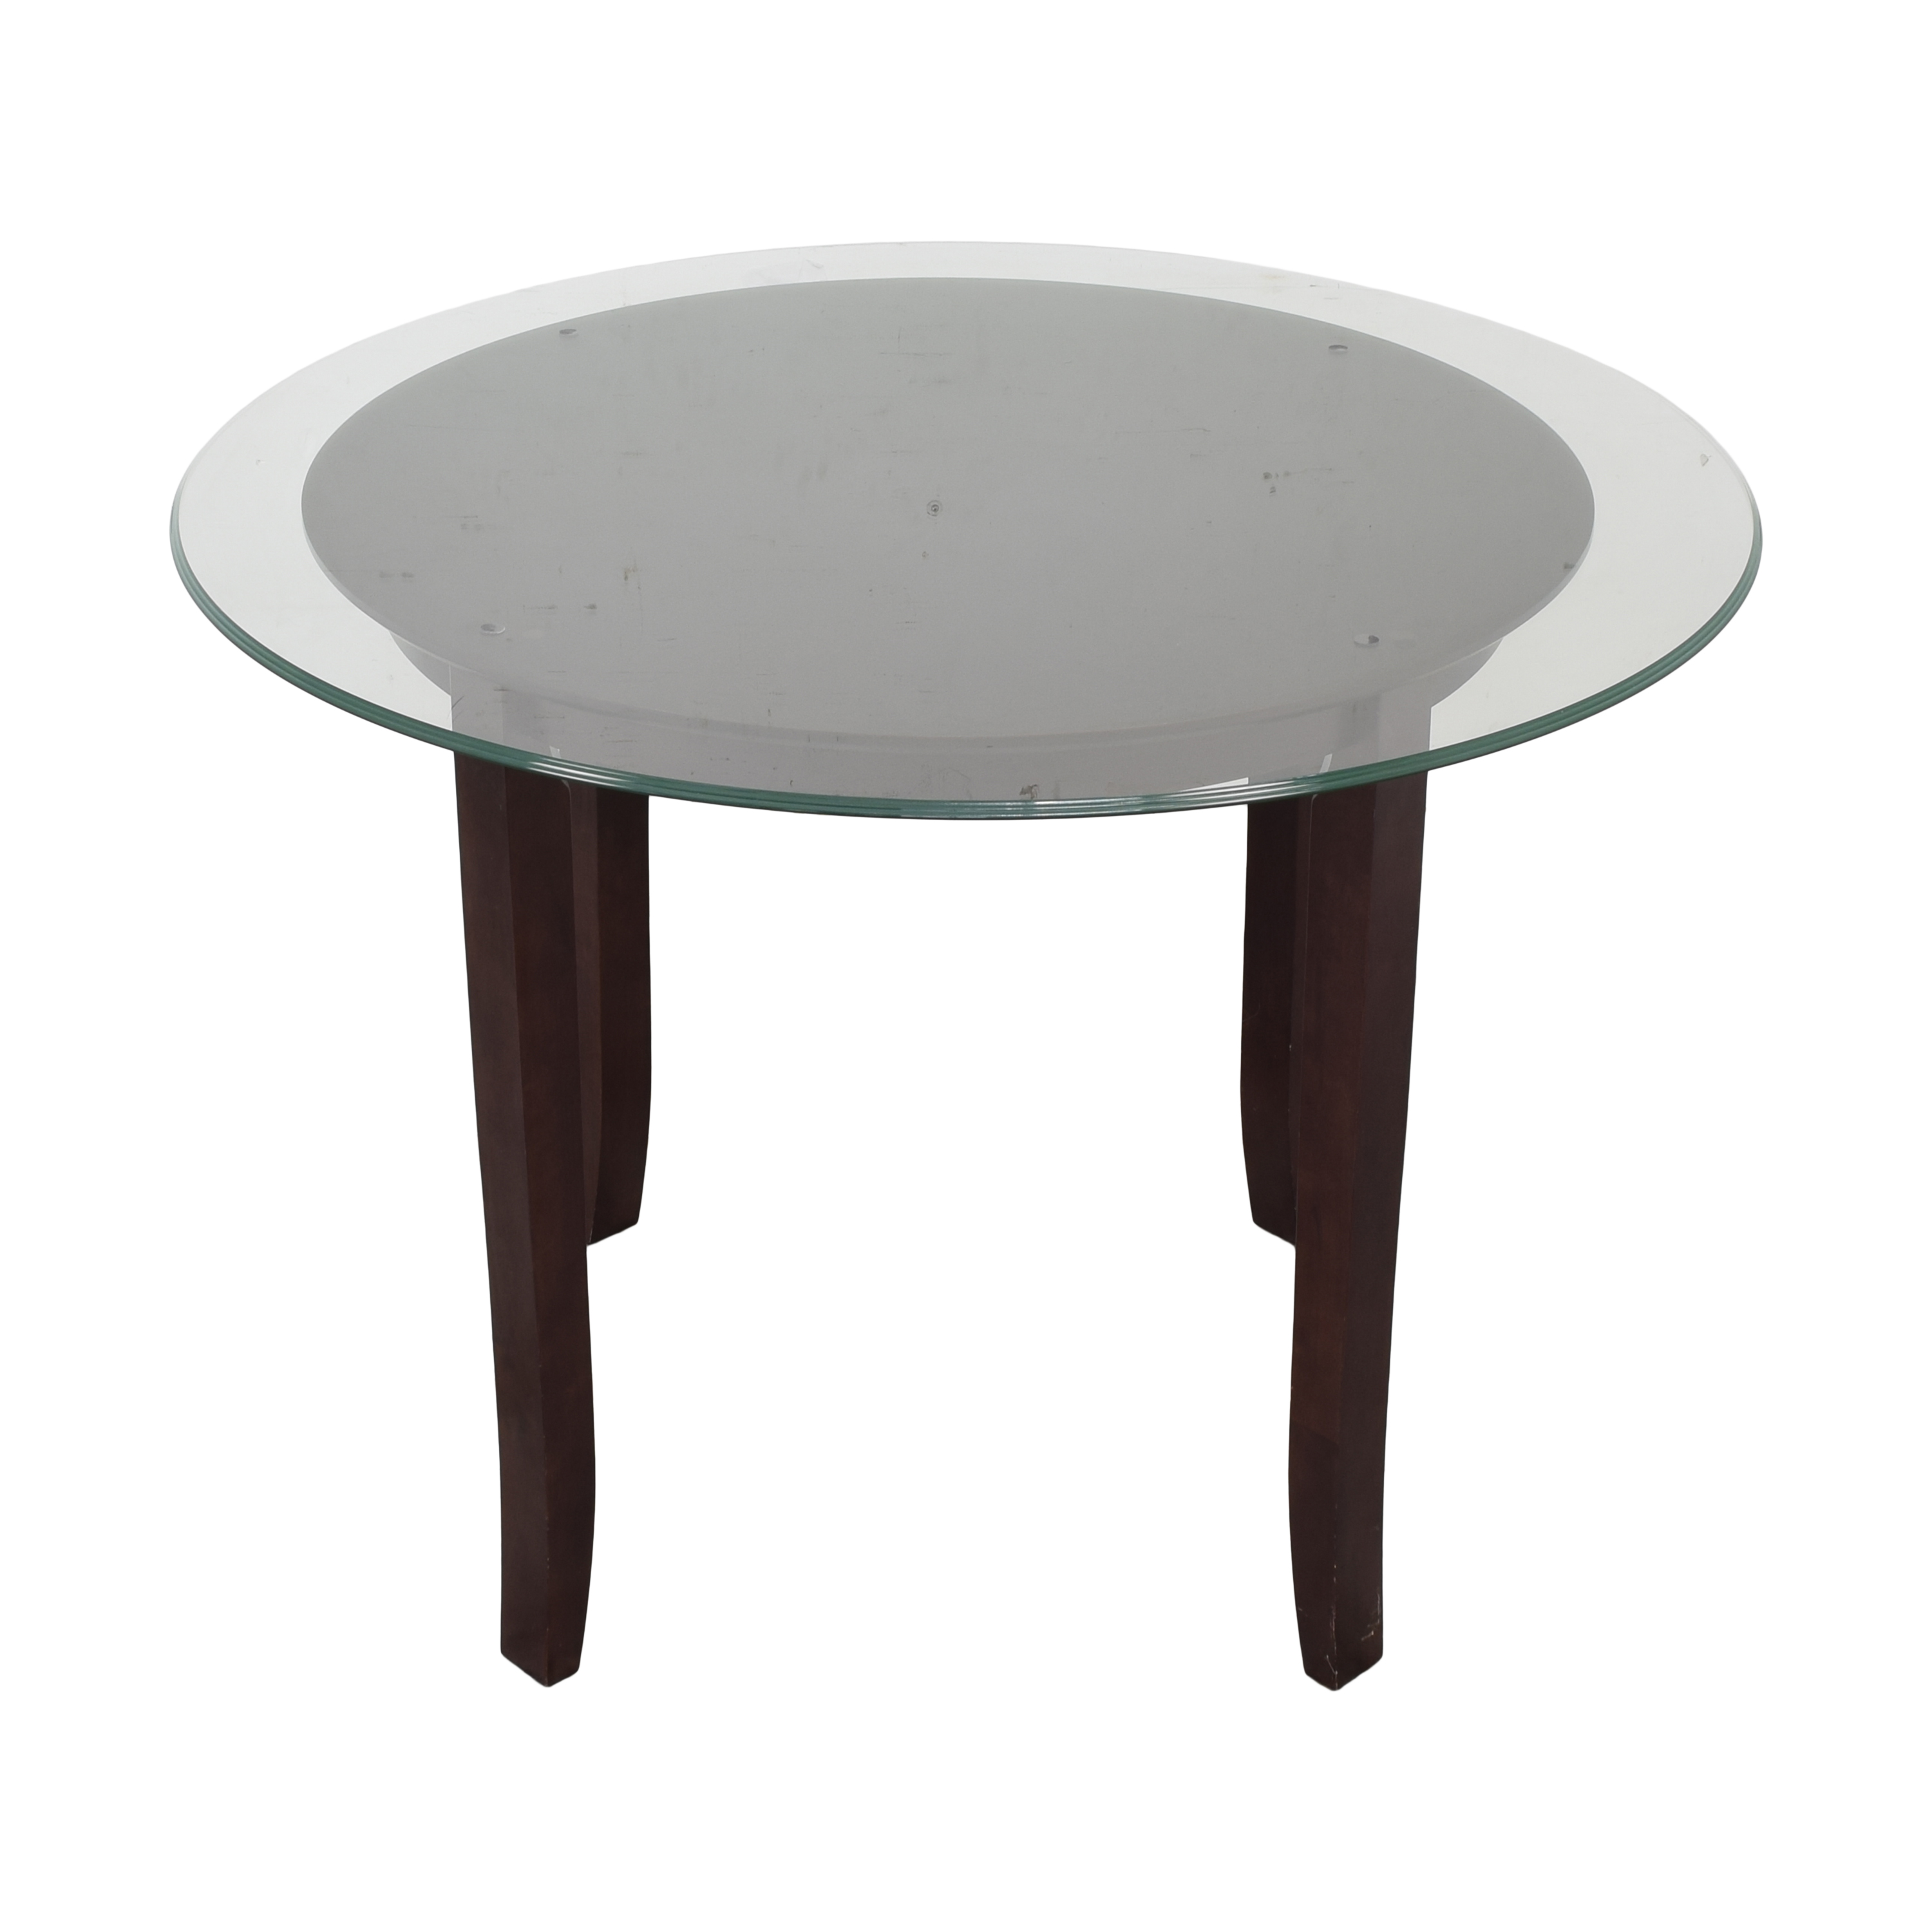 Rooms To Go Keefer High Top Dining Room Table / Tables